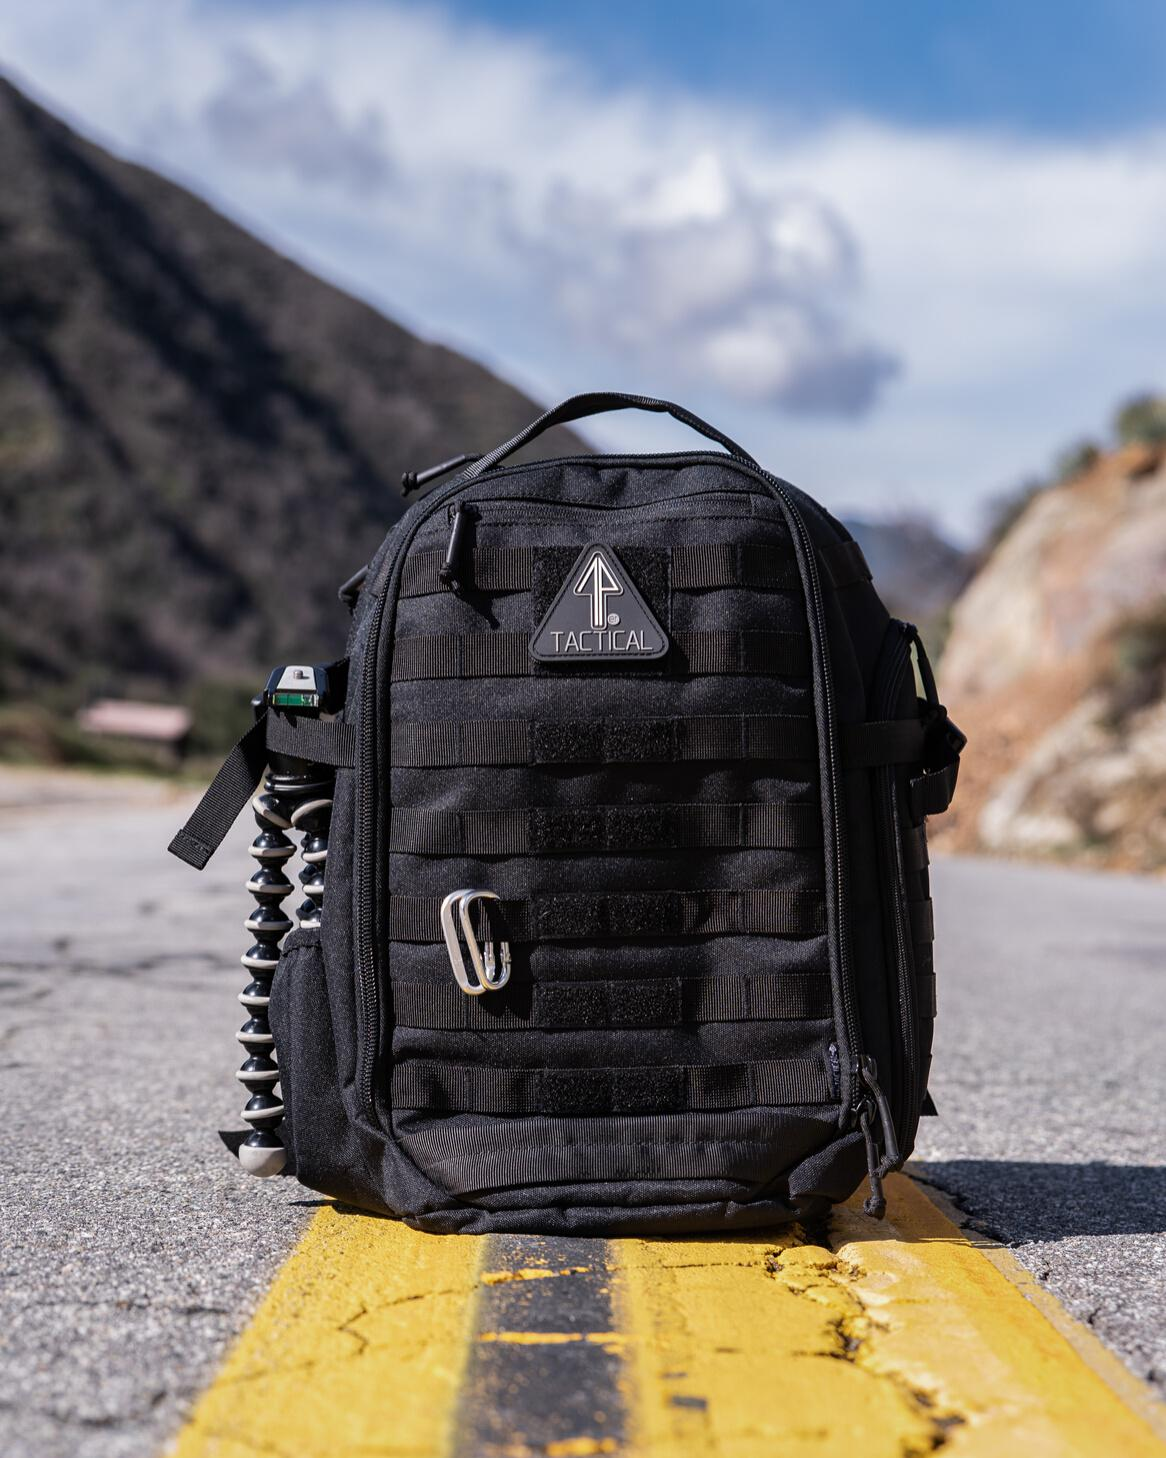 A 14er Tactical backpack is well-cleaned and maintained.